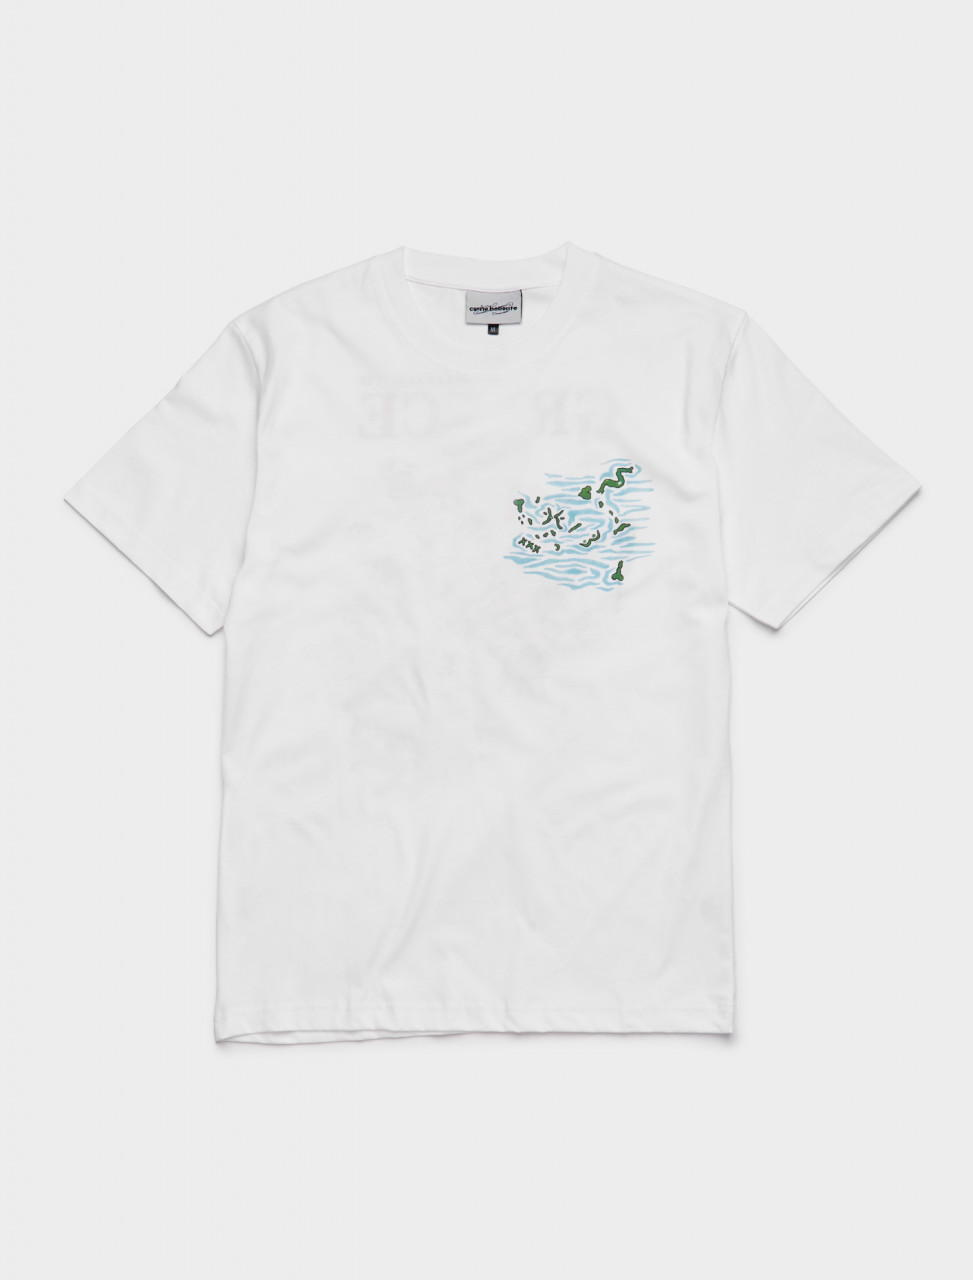 149-AW20TS006 CARNE BOLLENTE WELCUM TO GREECE T-SHIRT WHITE